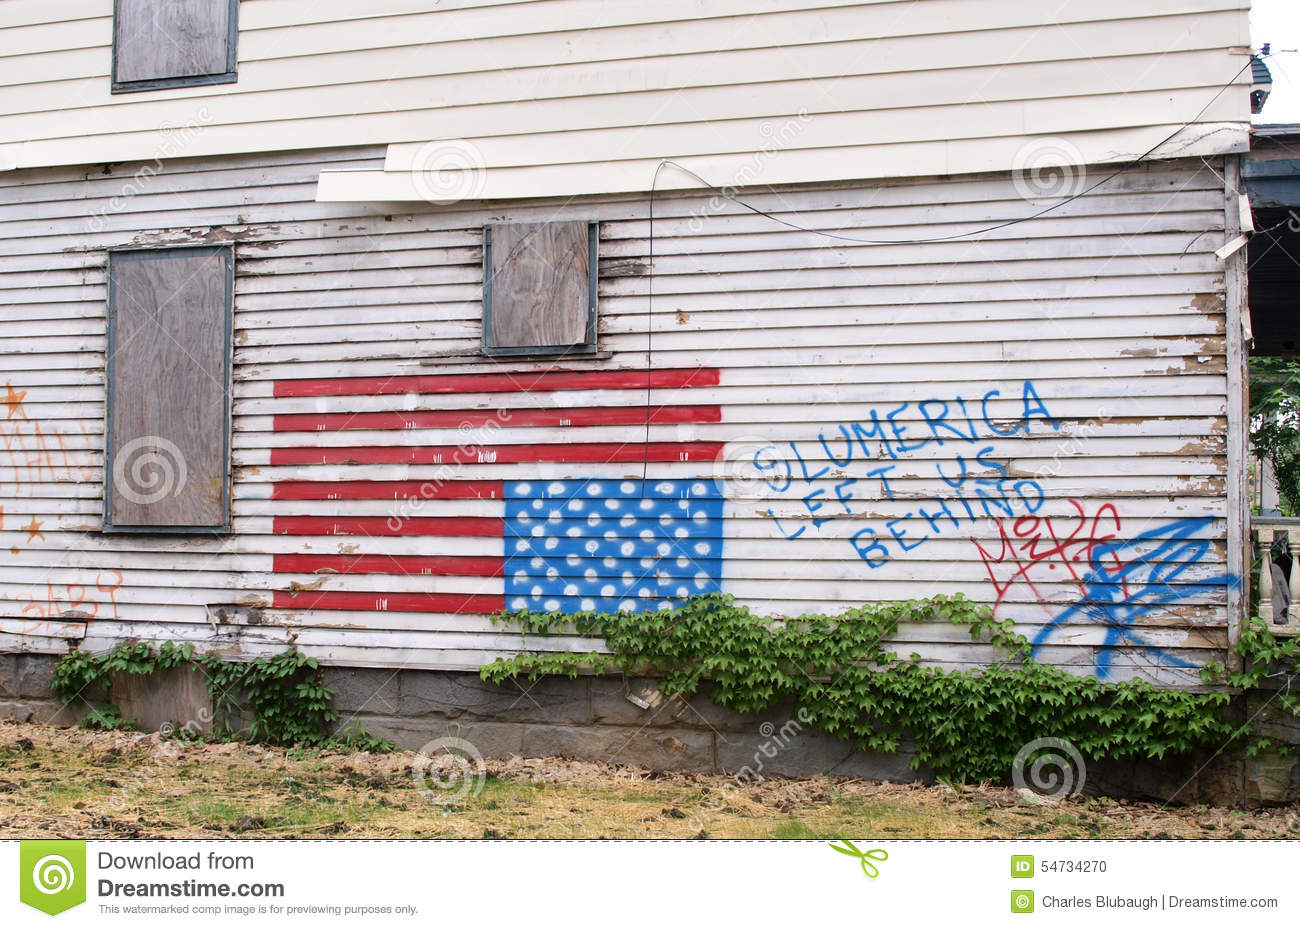 A Vacant Vandalized House In The Inner City Of Cleveland Ohio With An American Flag Graffiti And Message